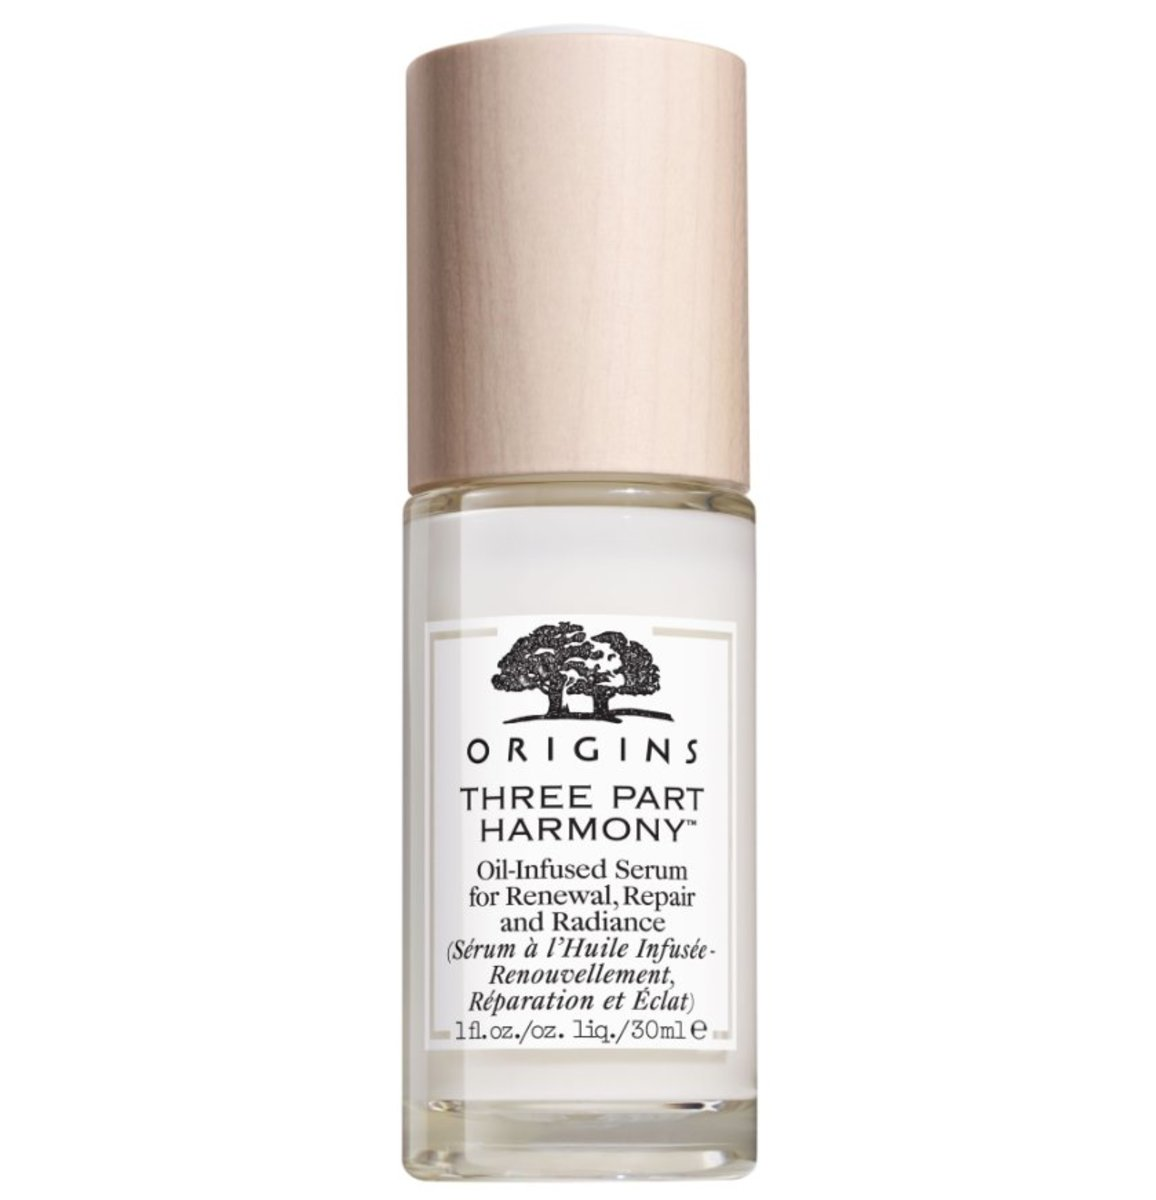 Oil Infused Serum For Renewal Repair And Radiance 30ml (Parallel Import)